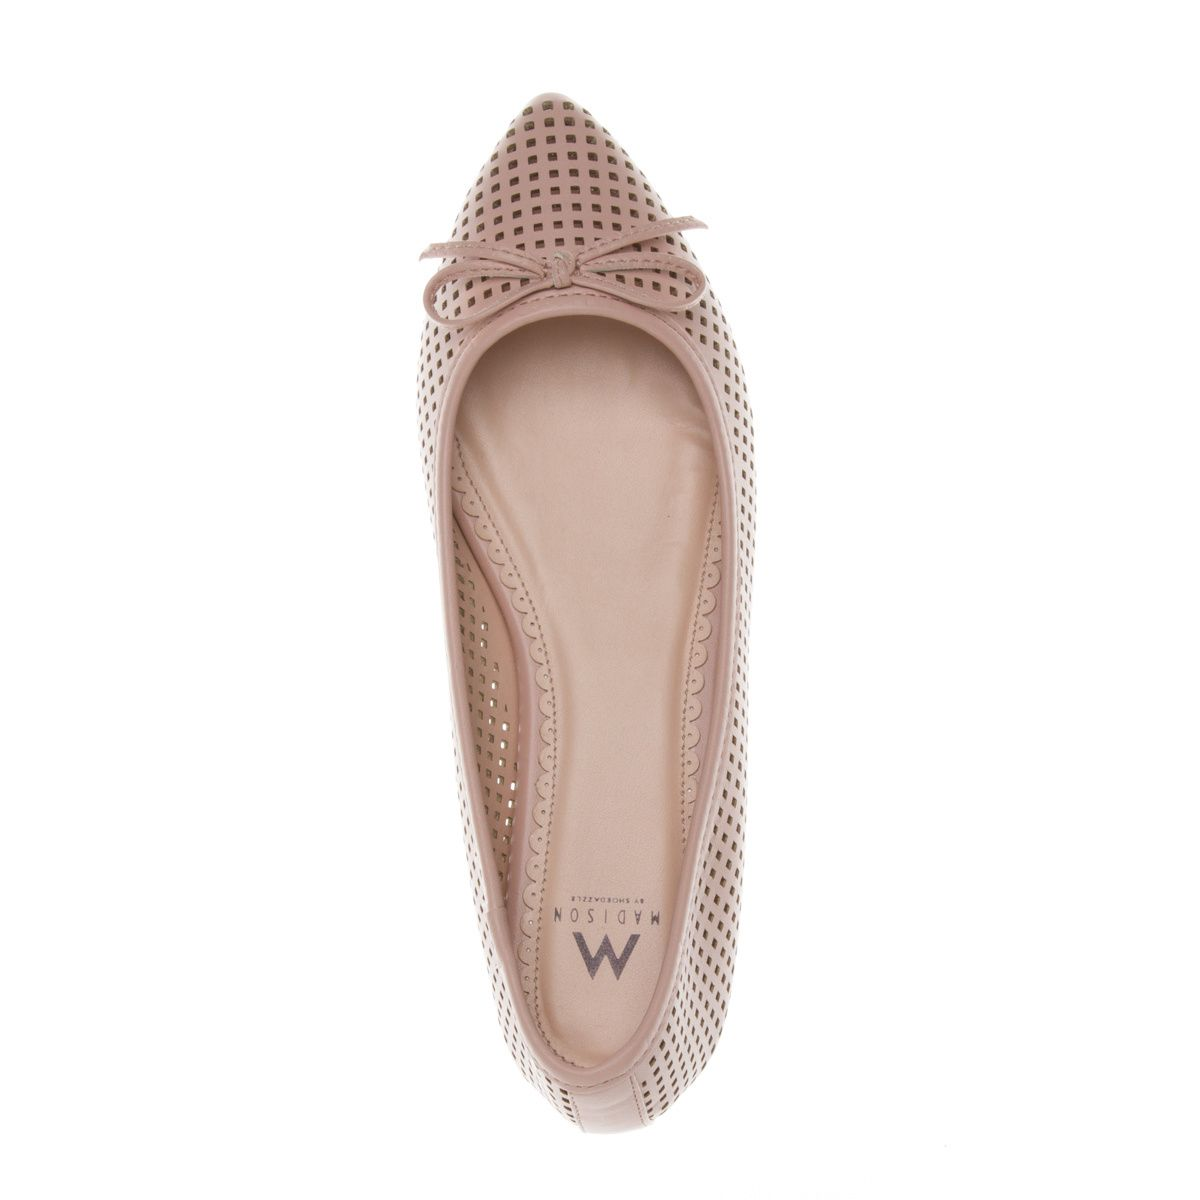 lady like perforated flats